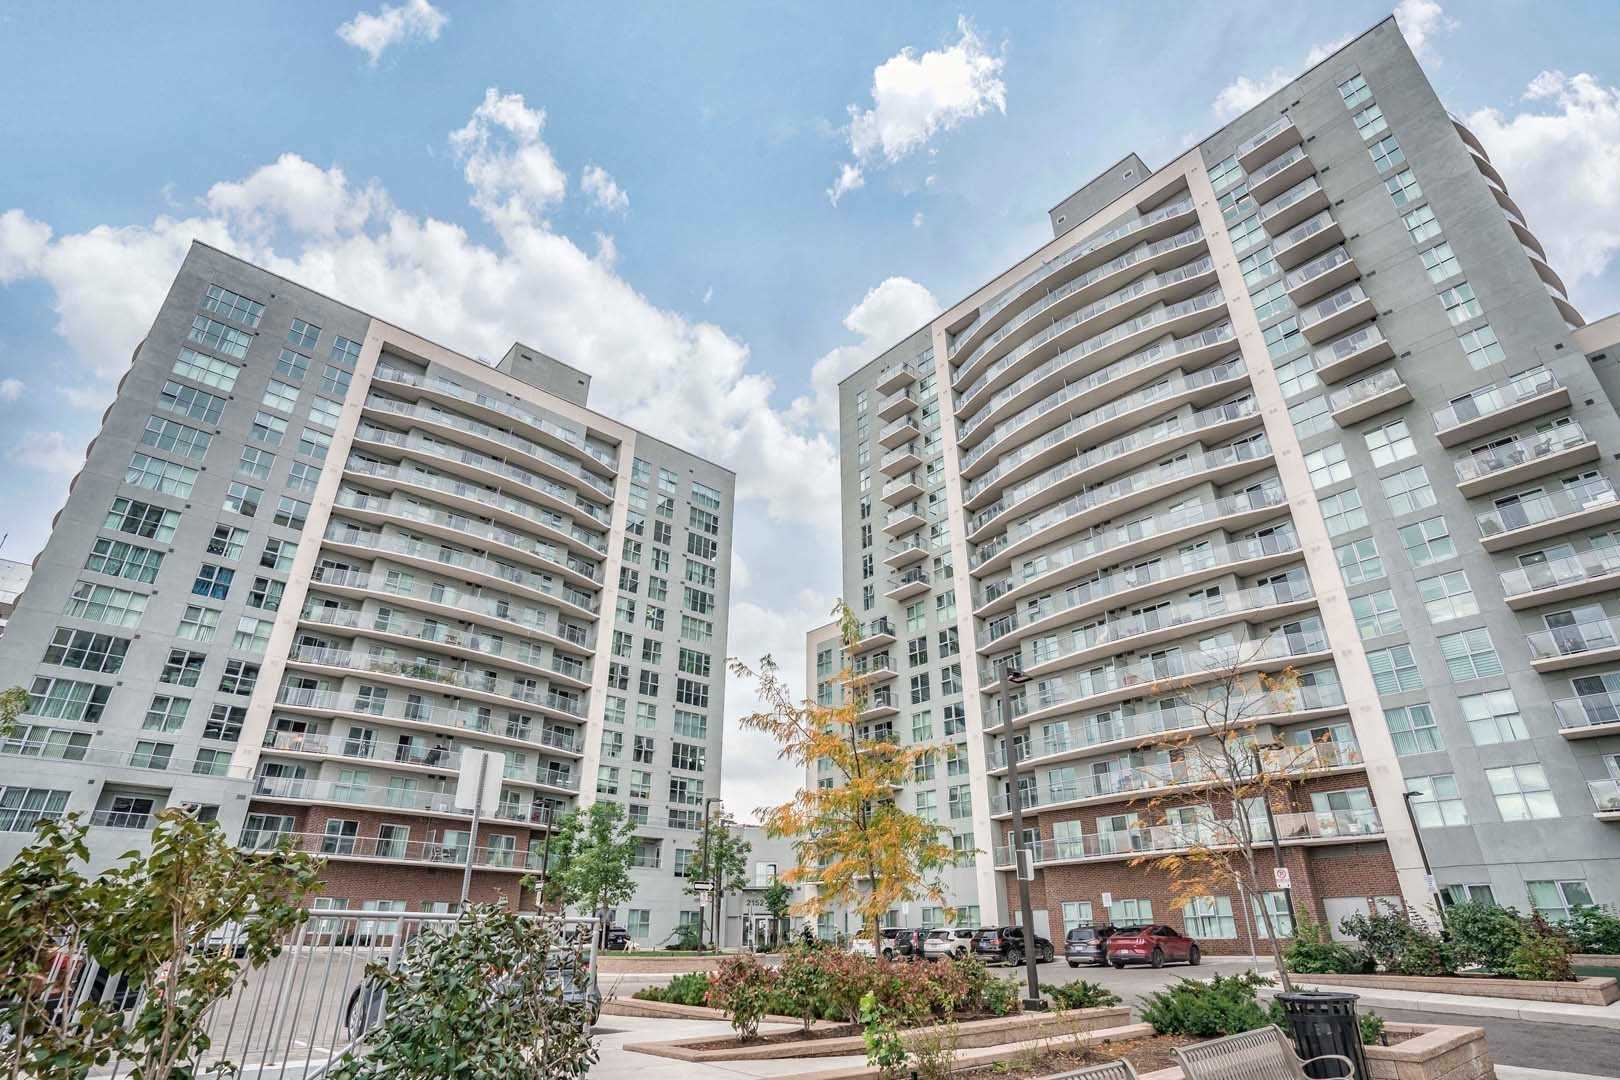 1708 - 2150 Lawrence Ave E - Wexford-Maryvale Condo Apt for sale, 2 Bedrooms (E5409392) - #1